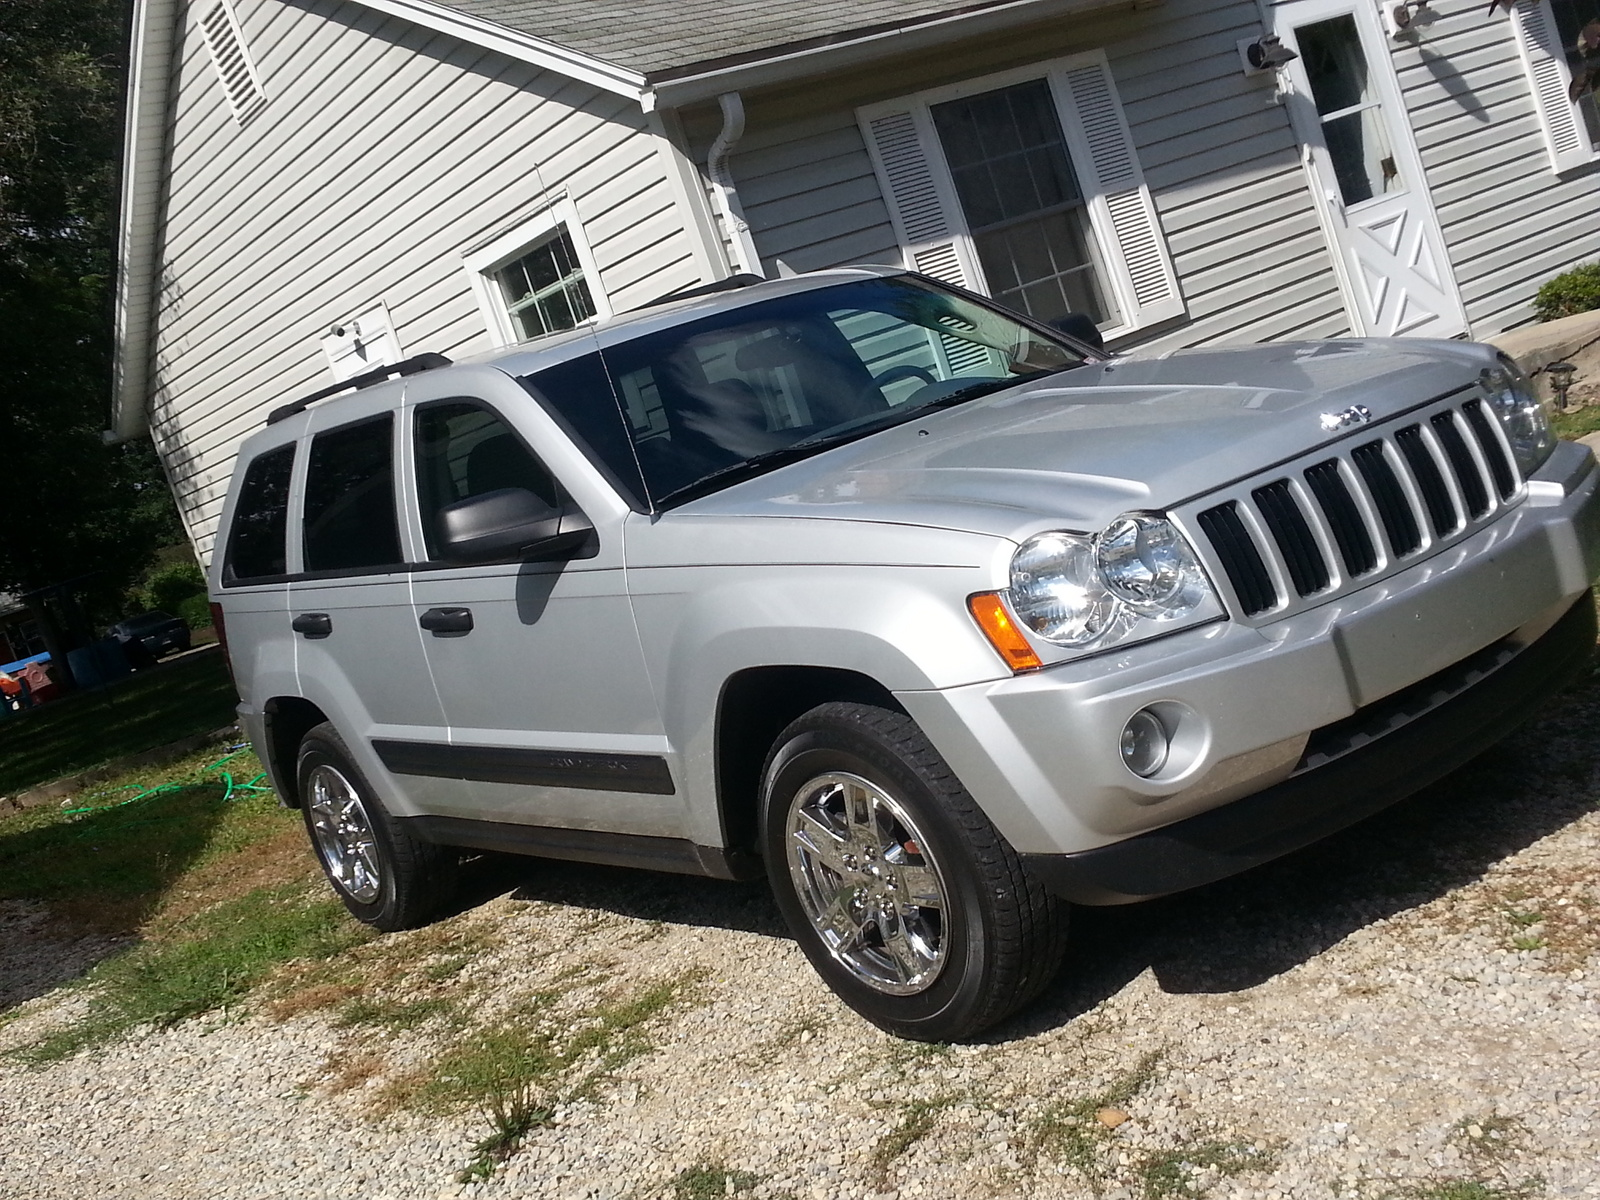 cherokee jeep 2006 grand cargurus laredo 4wd owns garage